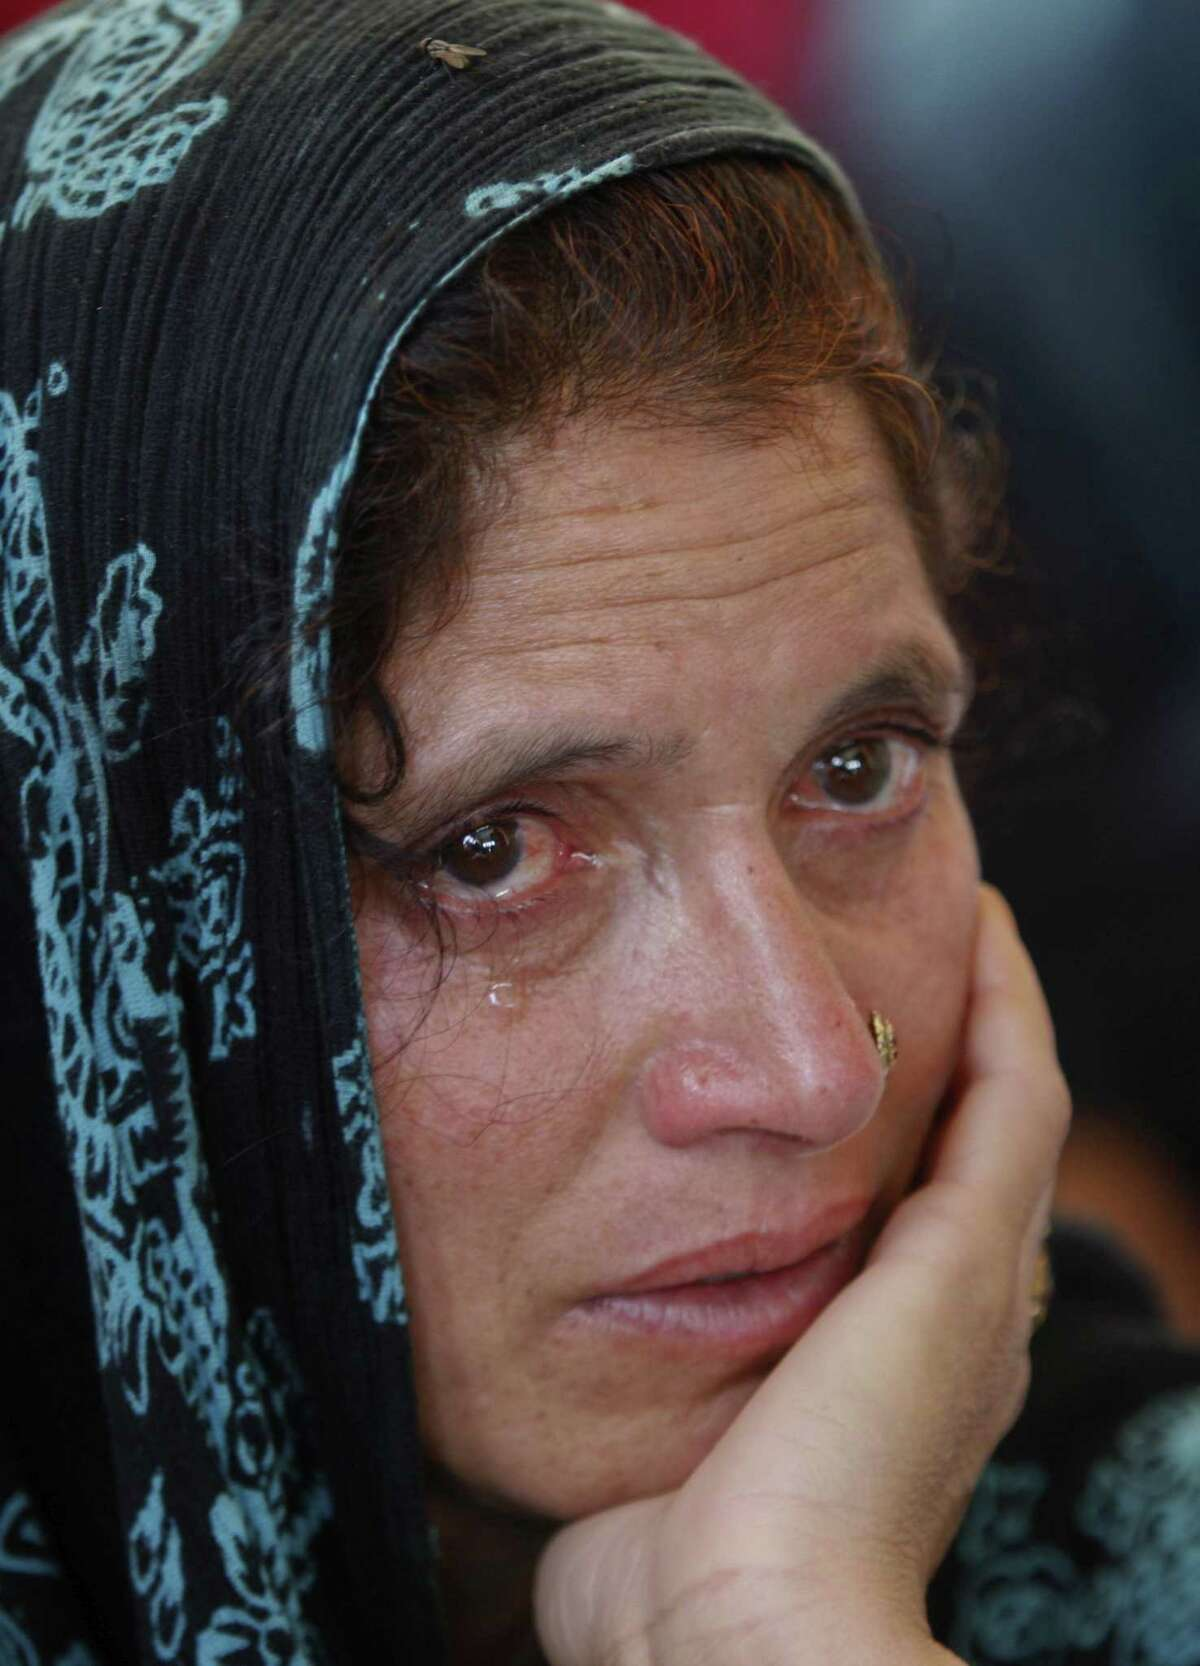 A relative weeps during the funeral of Indian civilian Sarpanch Karamat Hussain who was killed in Pakistani shelling at Balakot sector in Poonch, Jammu and Kashmir, India on Aug.16, 2015.